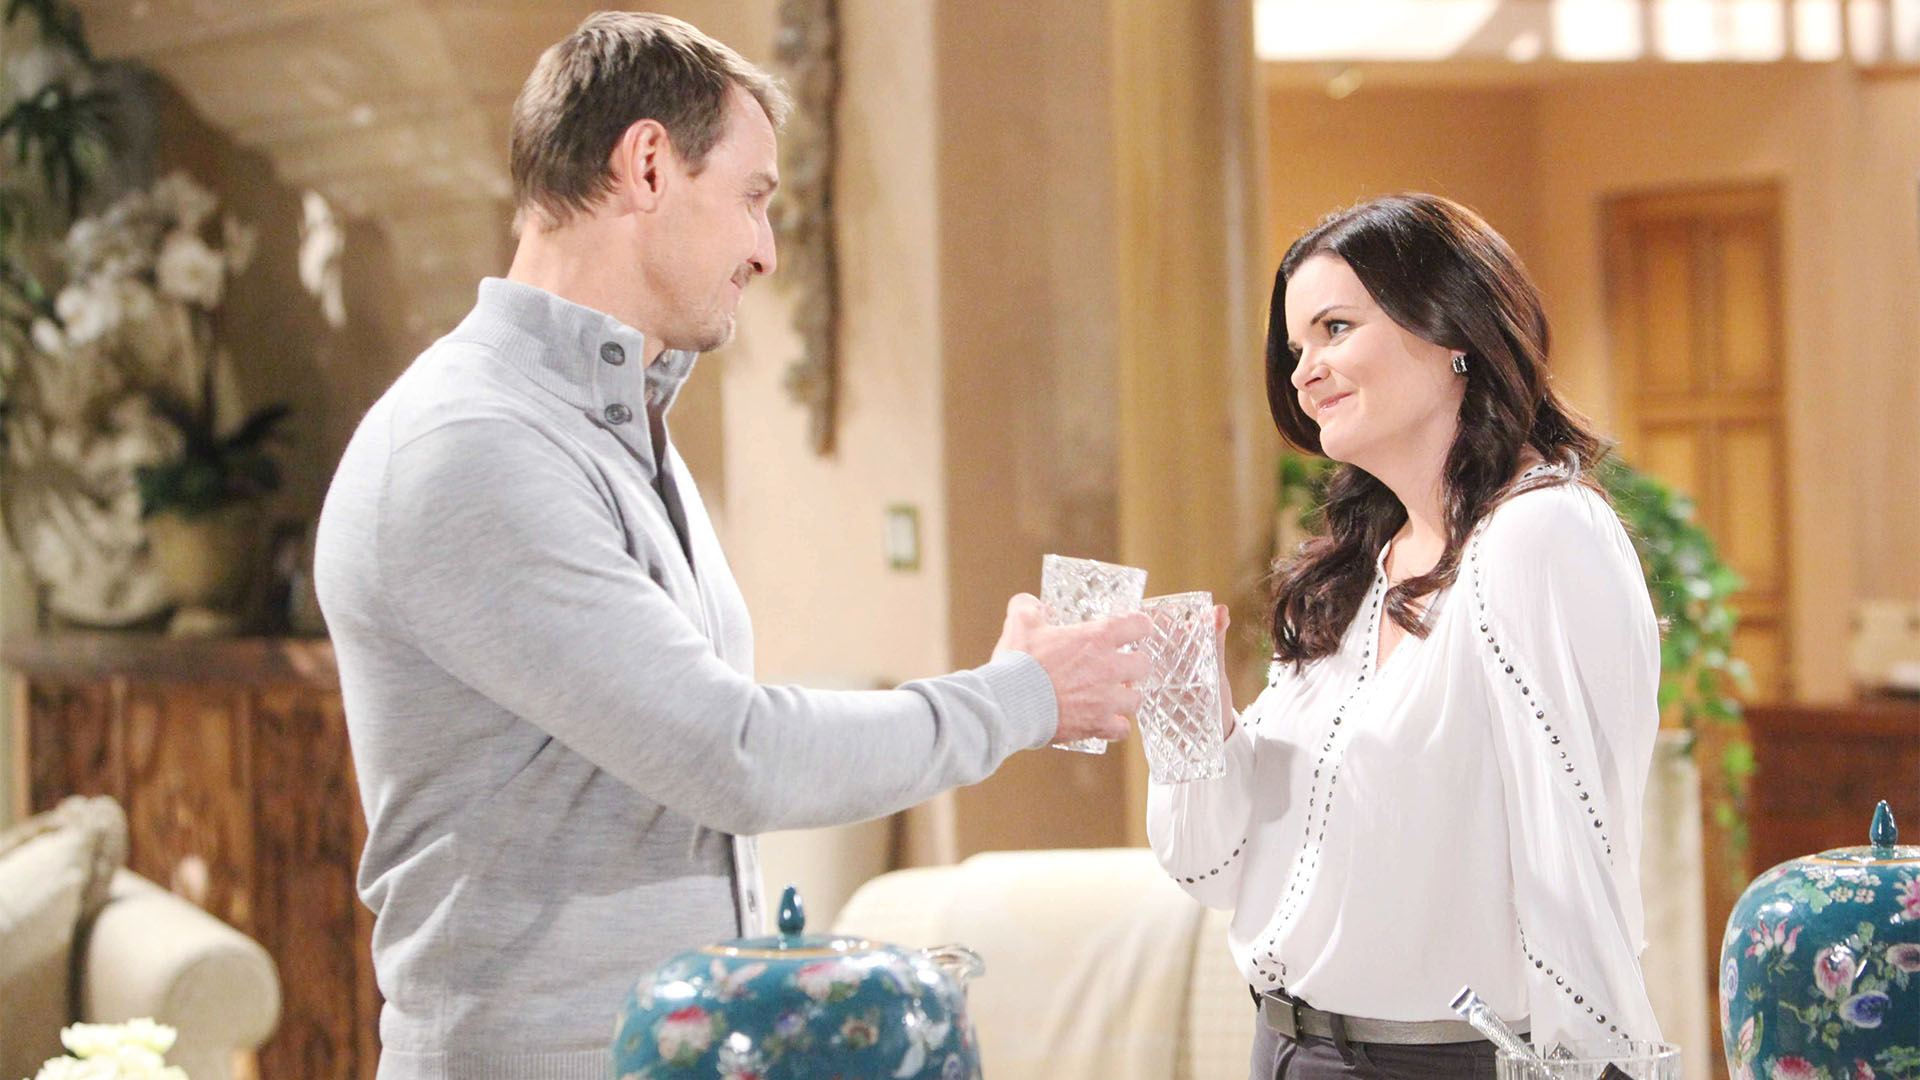 While working side-by-side on Ridge and Brooke's wedding, Thorne makes an entertaining proposition to Katie.